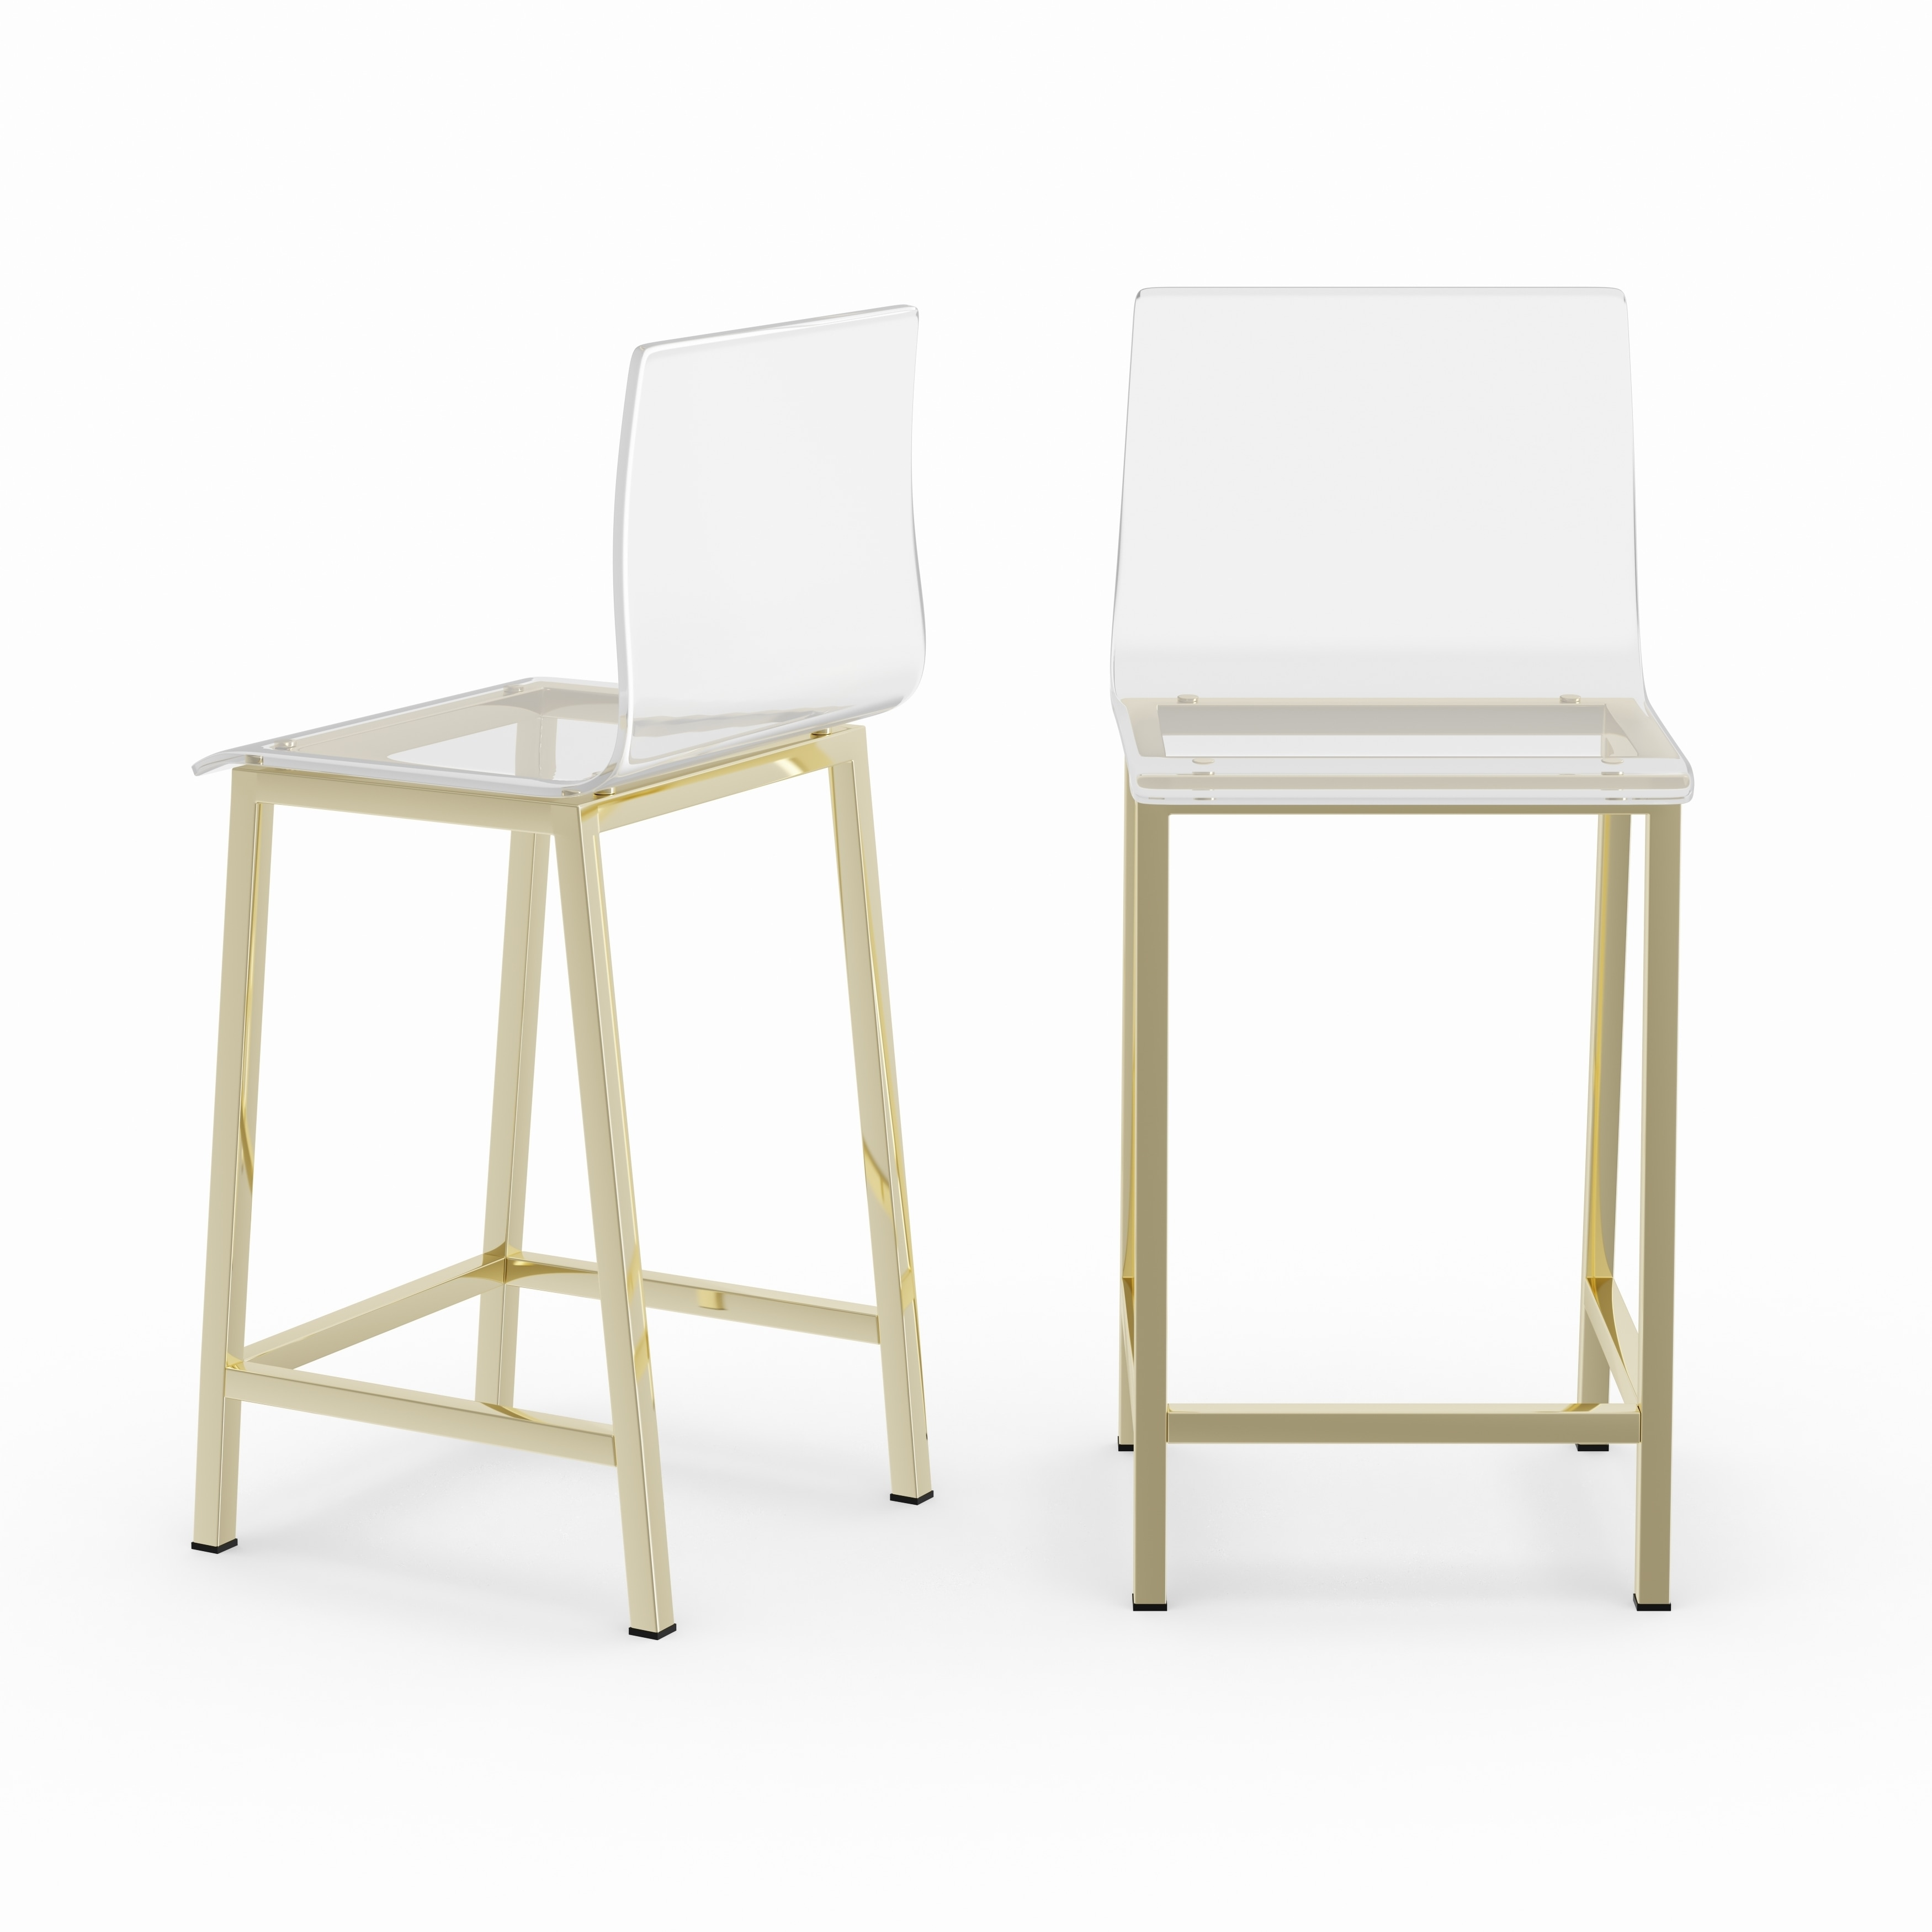 Peachy Silver Orchid Svendsen Clear Acrylic Counter Stool Set Of 2 Unemploymentrelief Wooden Chair Designs For Living Room Unemploymentrelieforg